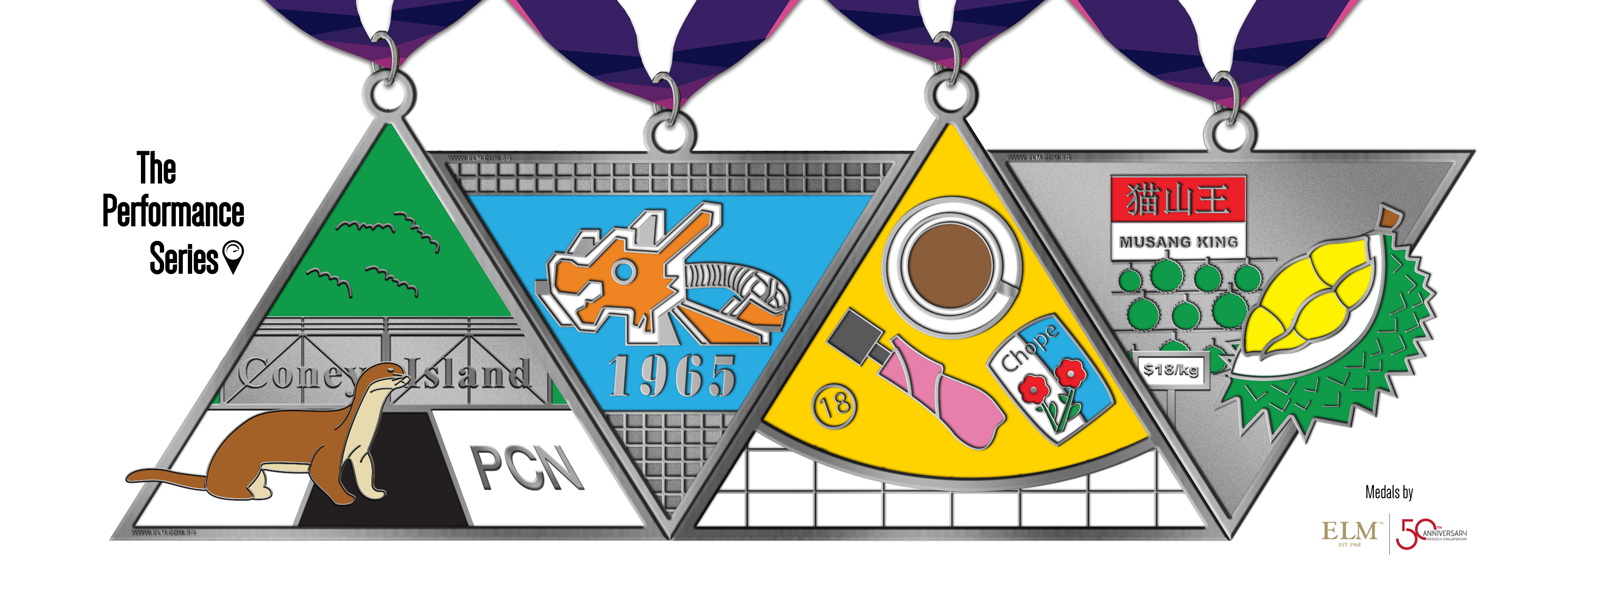 tps-medals-web-front.png